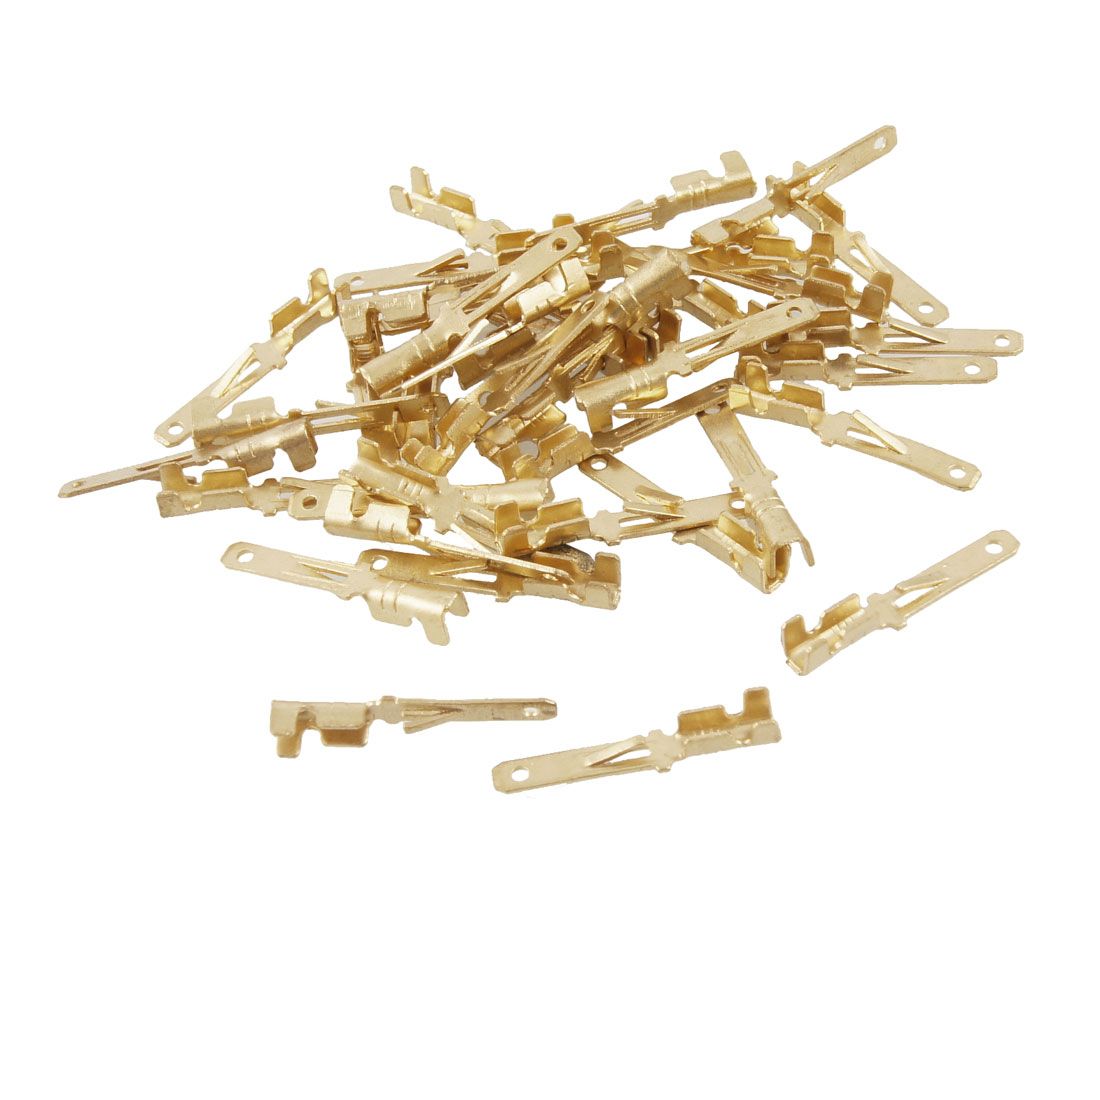 40 Pcs Gold Tone Male Spade Crimp Terminals 2mm Wiring Connectors